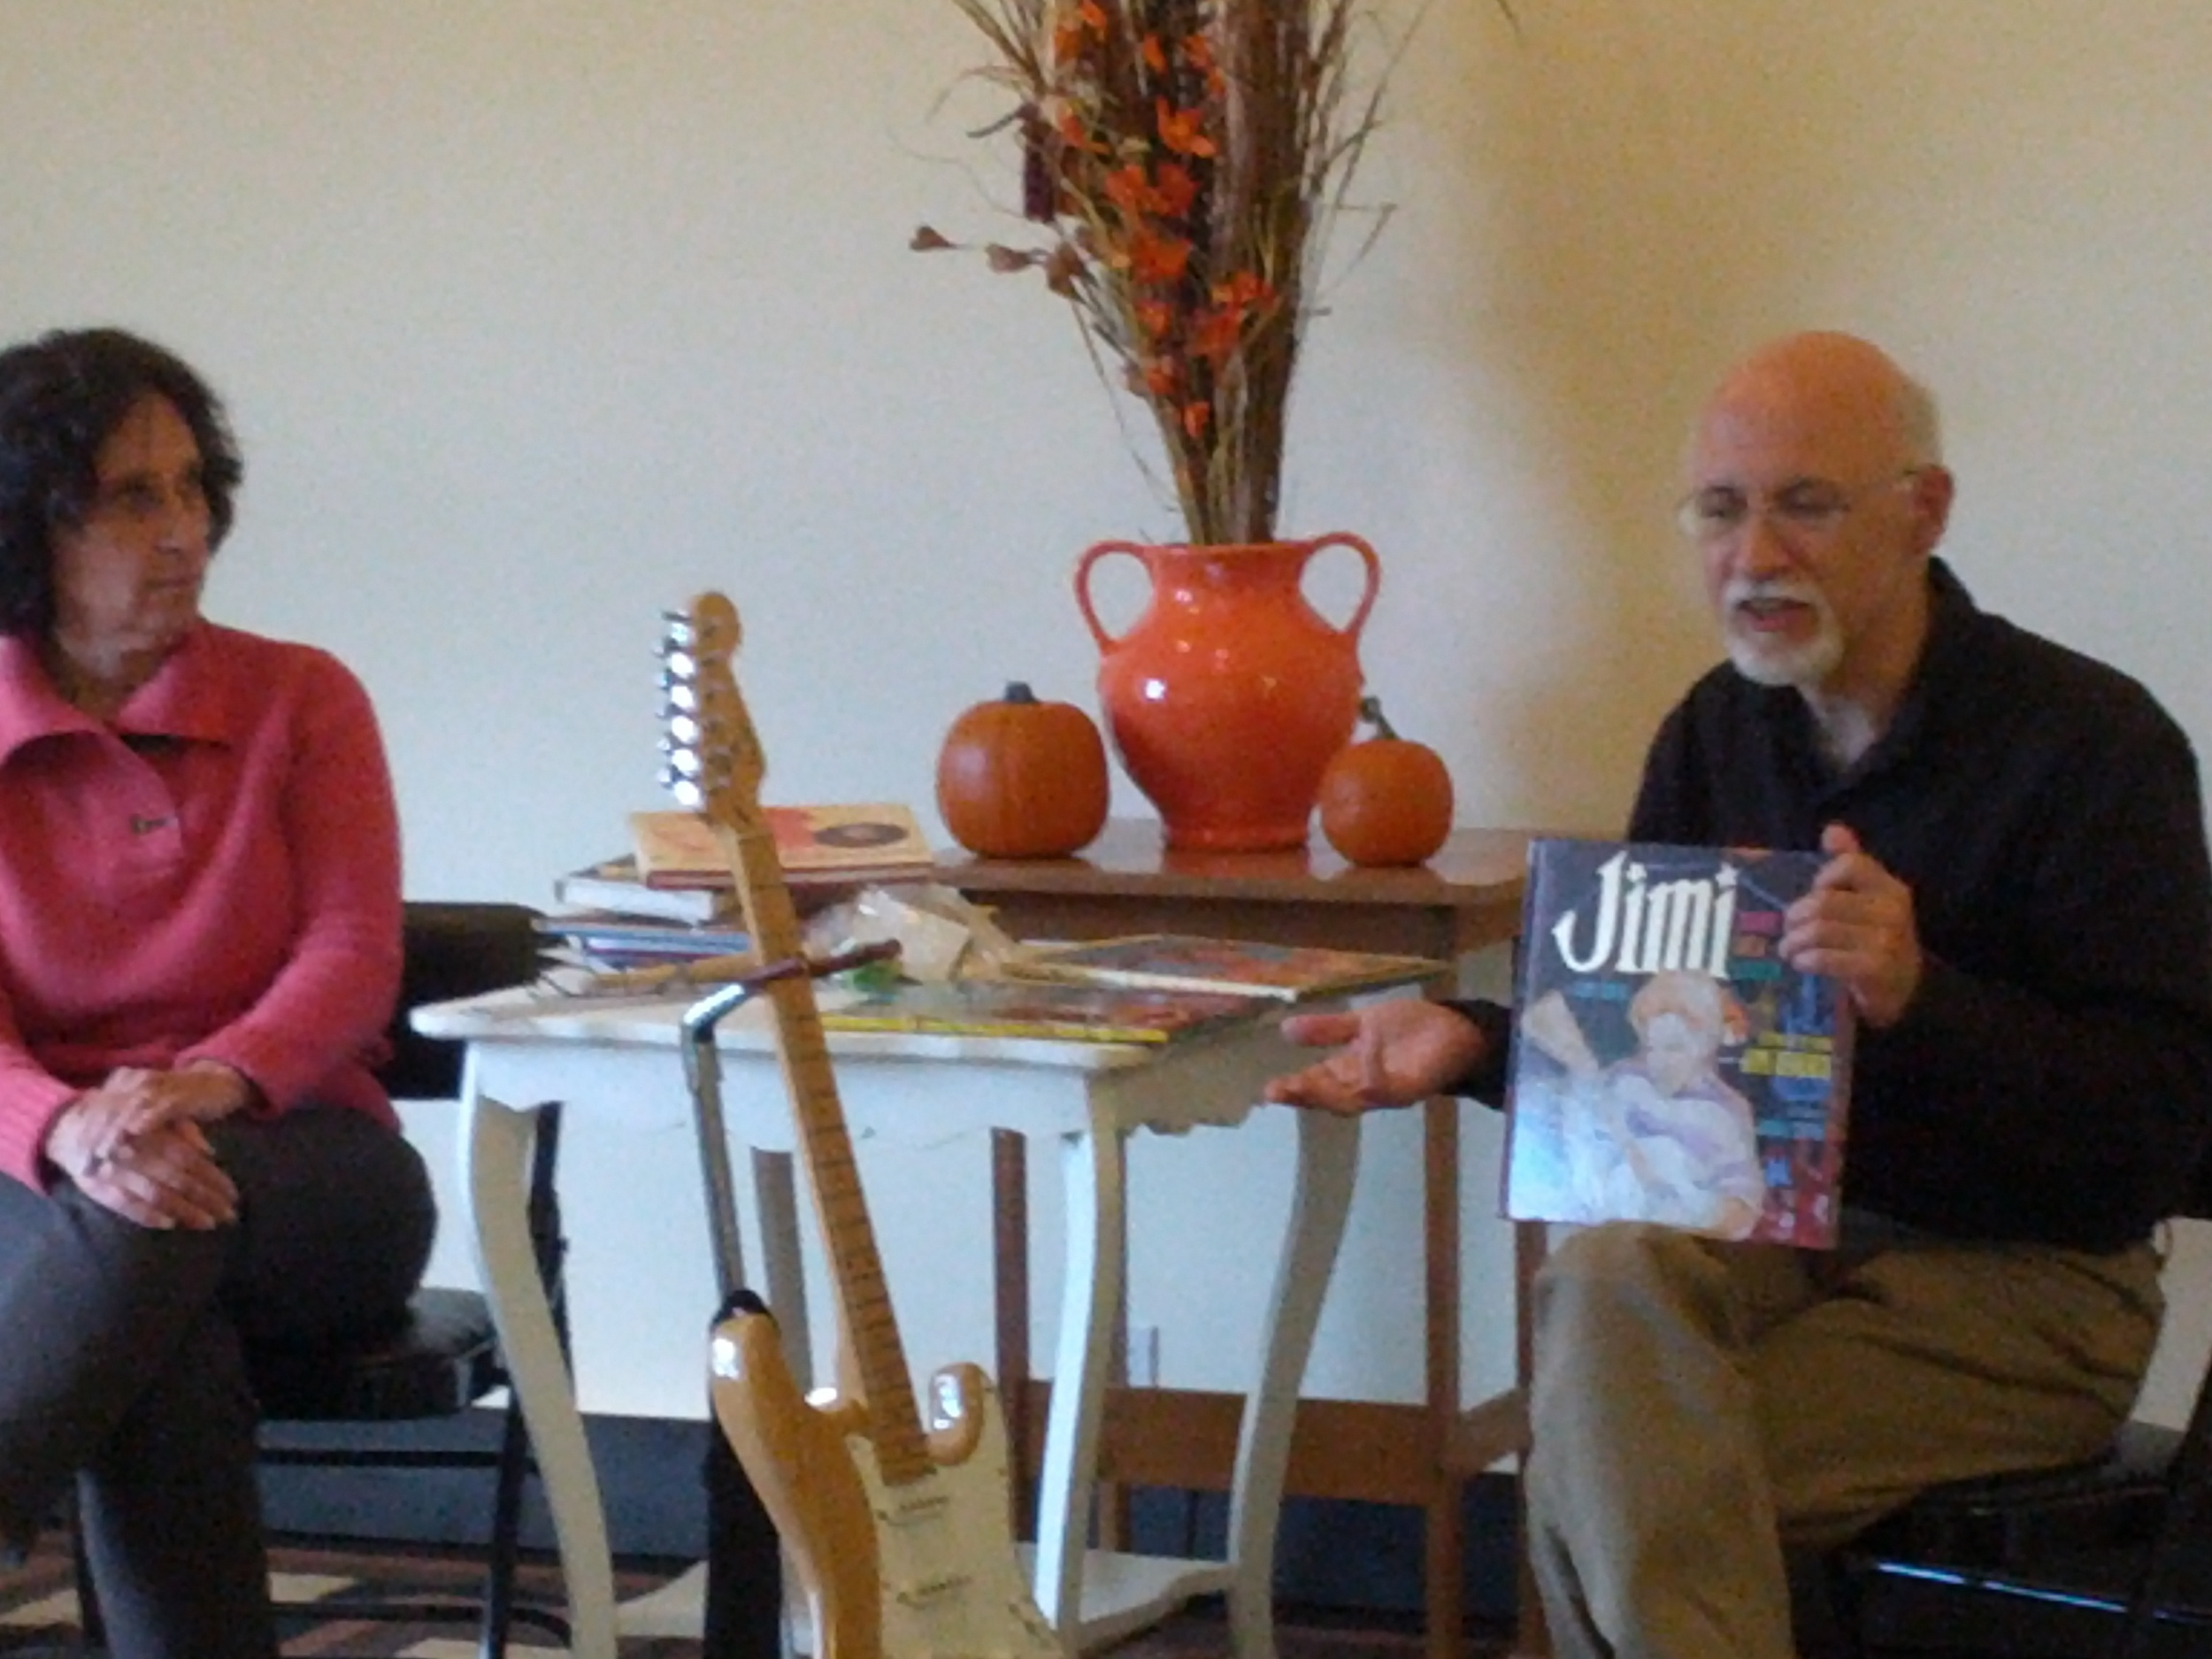 Guest speakers at a special event: Children's Authors Susanna Reich and her husband Gary Golio- Book signing and lots of cool information.